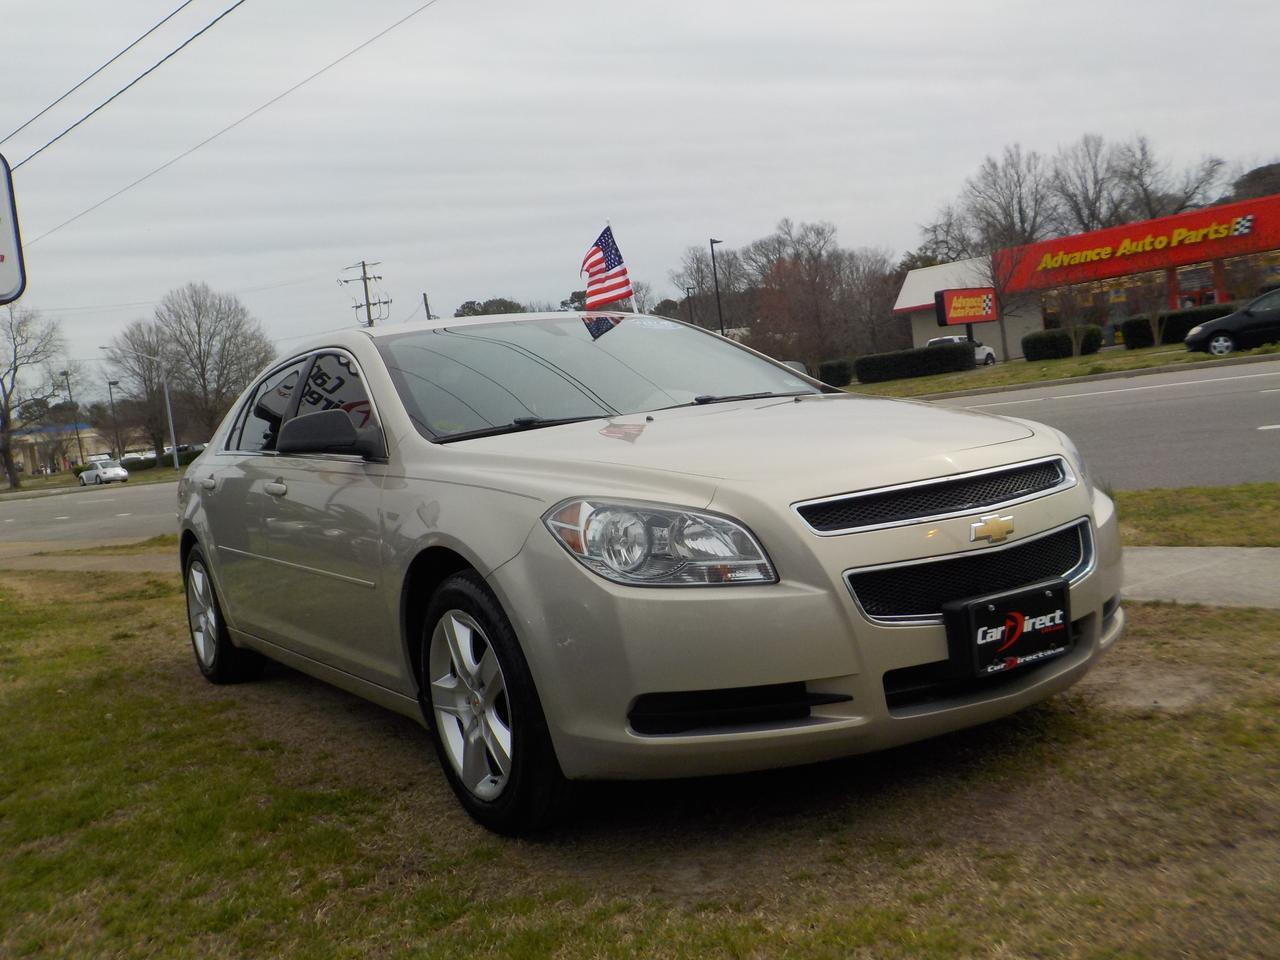 2012 CHEVROLET MALIBU LS w/1LS, BLUETOOTH WIRELESS, TINTED WINDOW, ONSTAR, KEYLESS ENTRY, CLIMATE CONTROL, AUXILIARY PORT! Virginia Beach VA